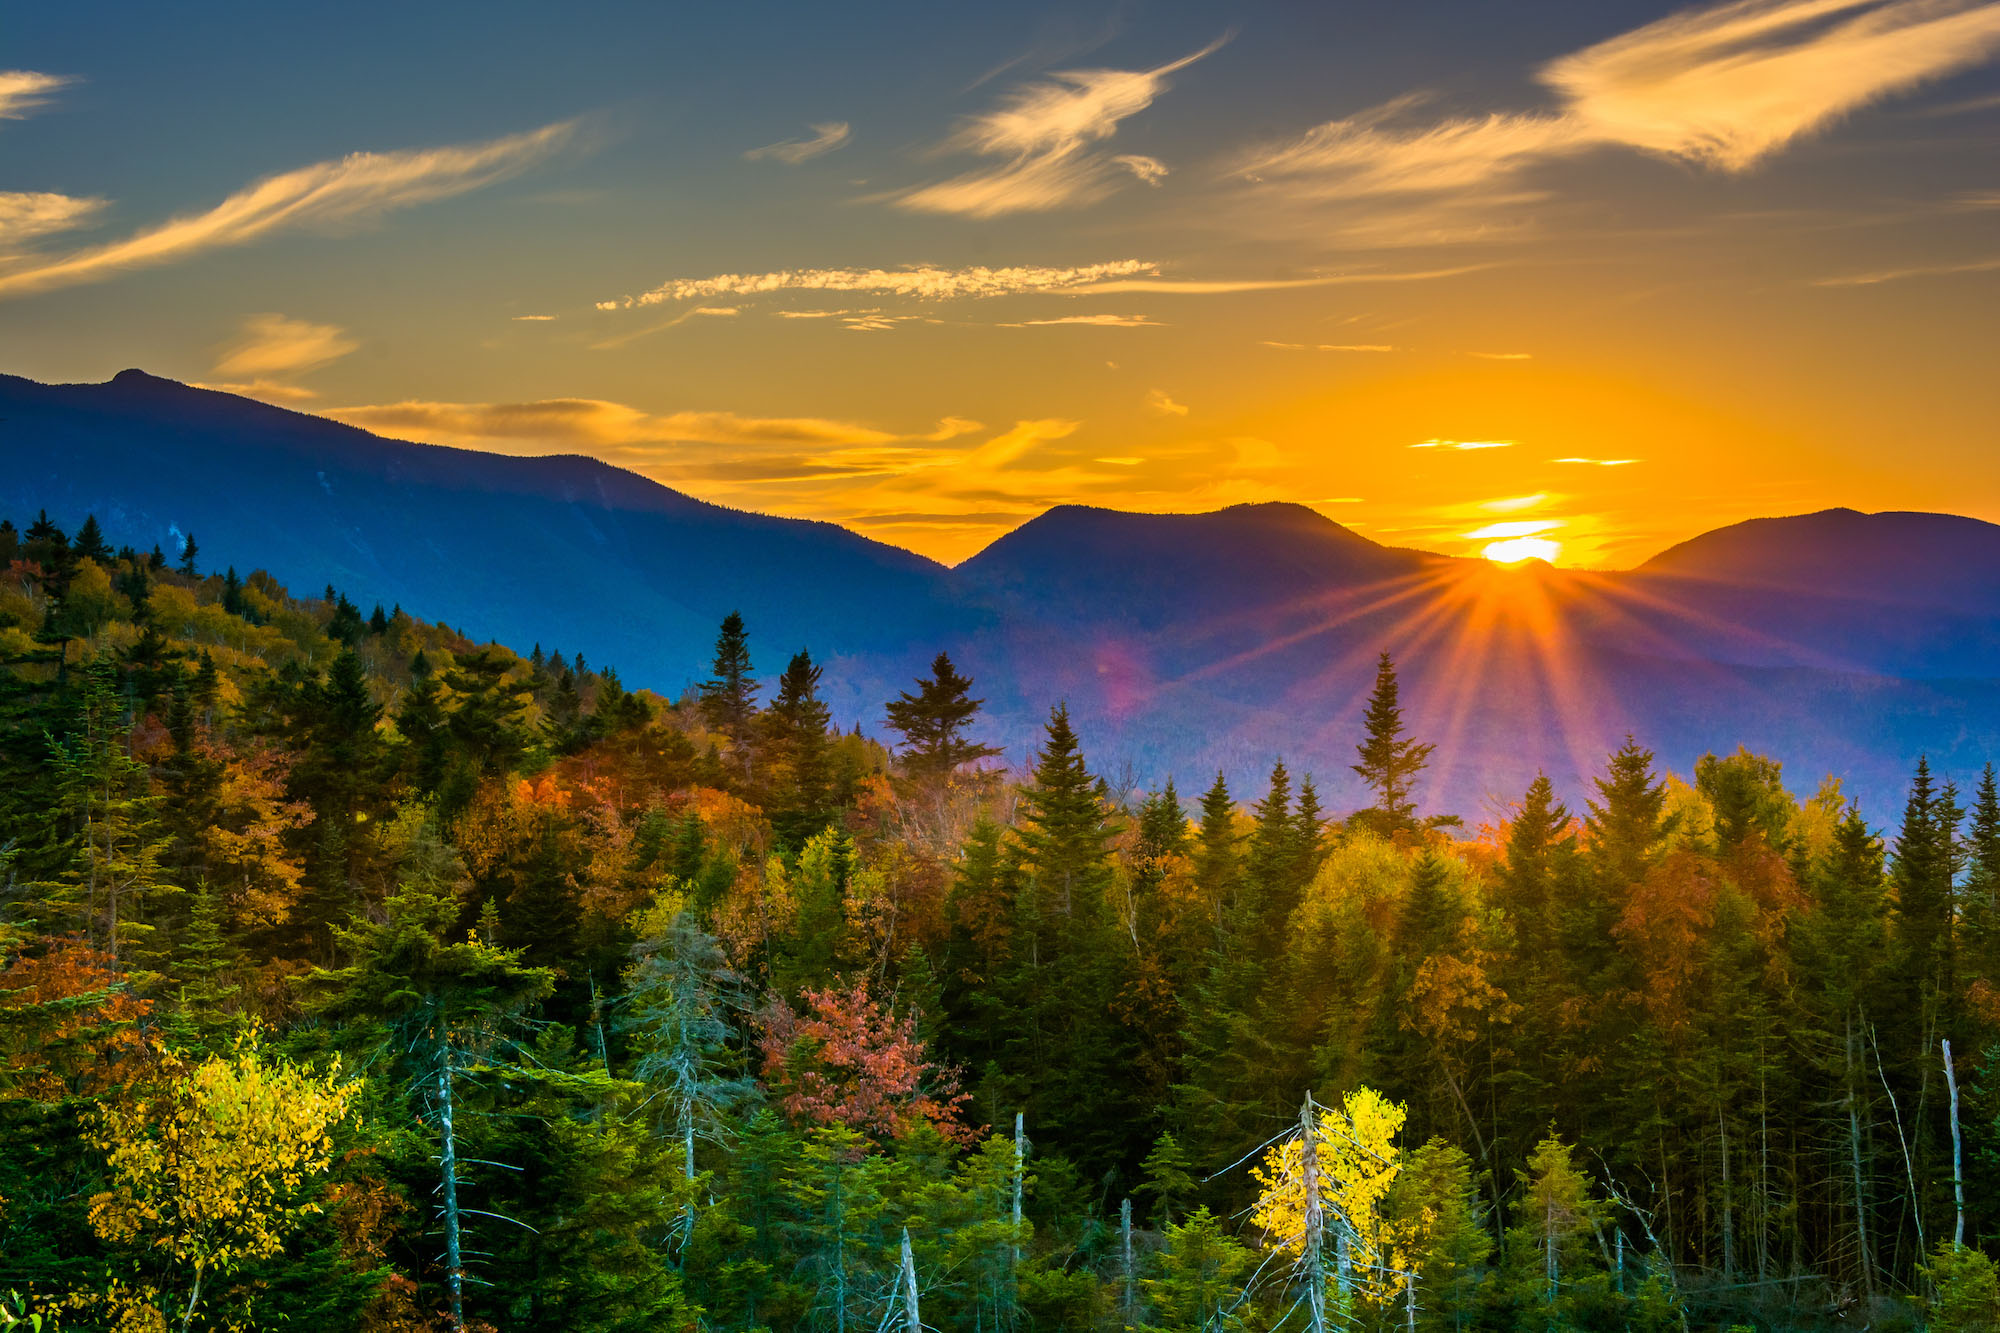 New Hampshire mountains at sunset